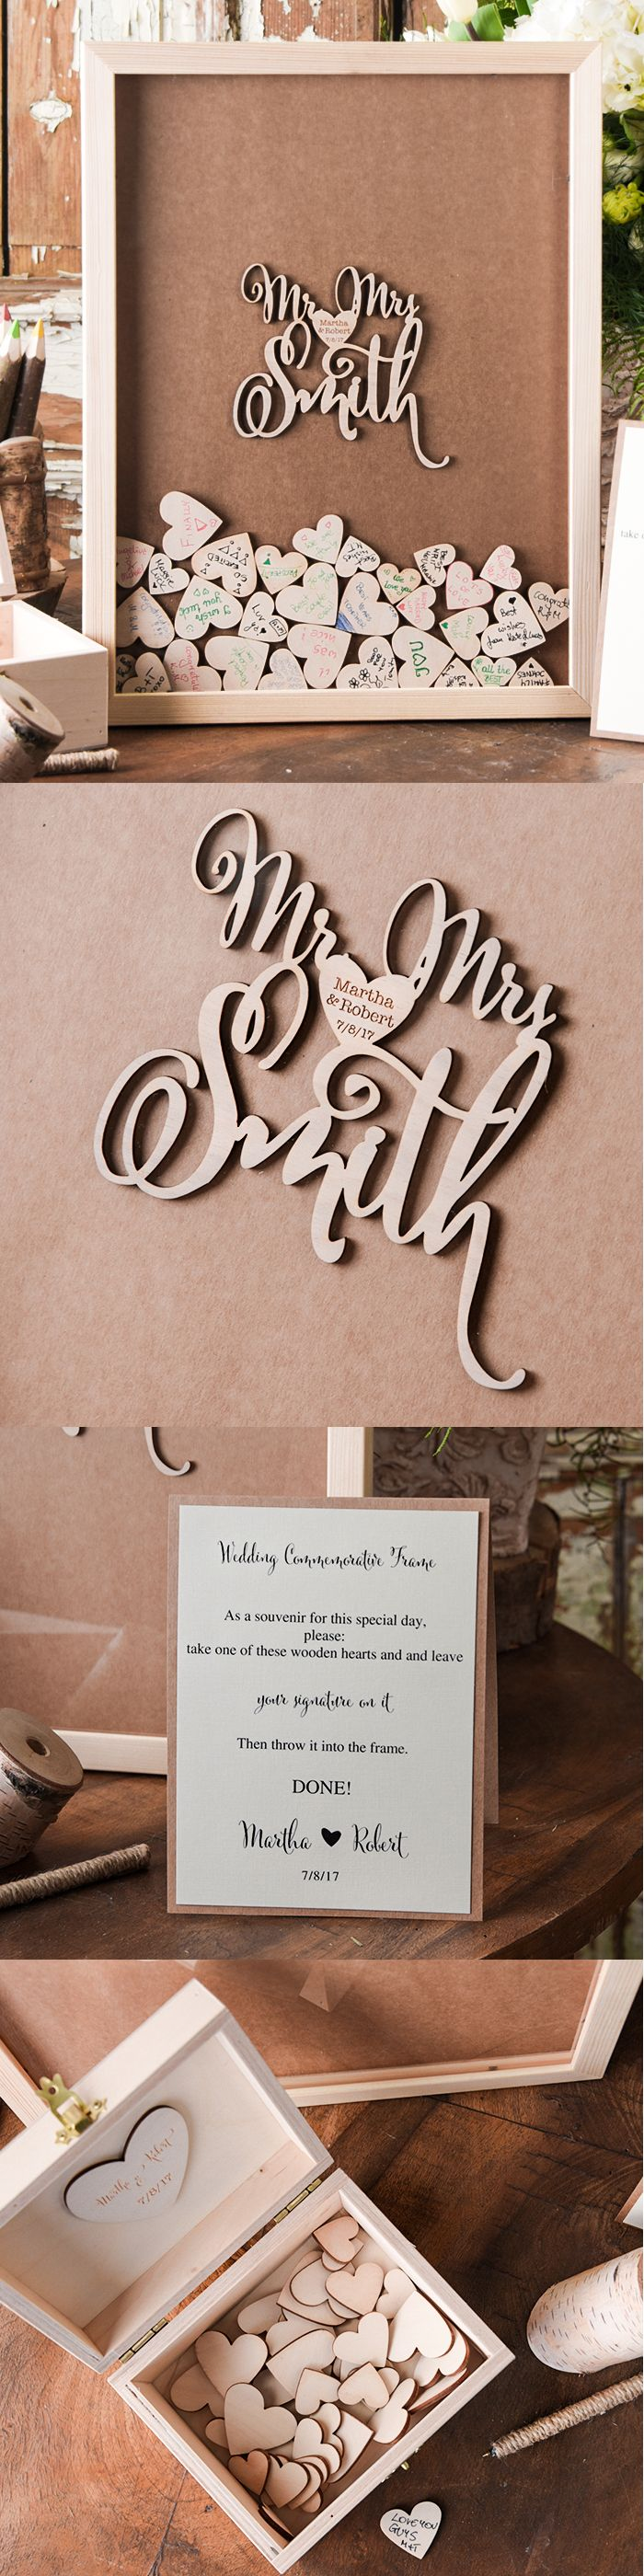 alternative wedding guestbook price 145$  for set 12inch on 14 inch wooden frame, 80 wooden hearts, rustic box,tented info, card and pen with holder #guestbookalternatives